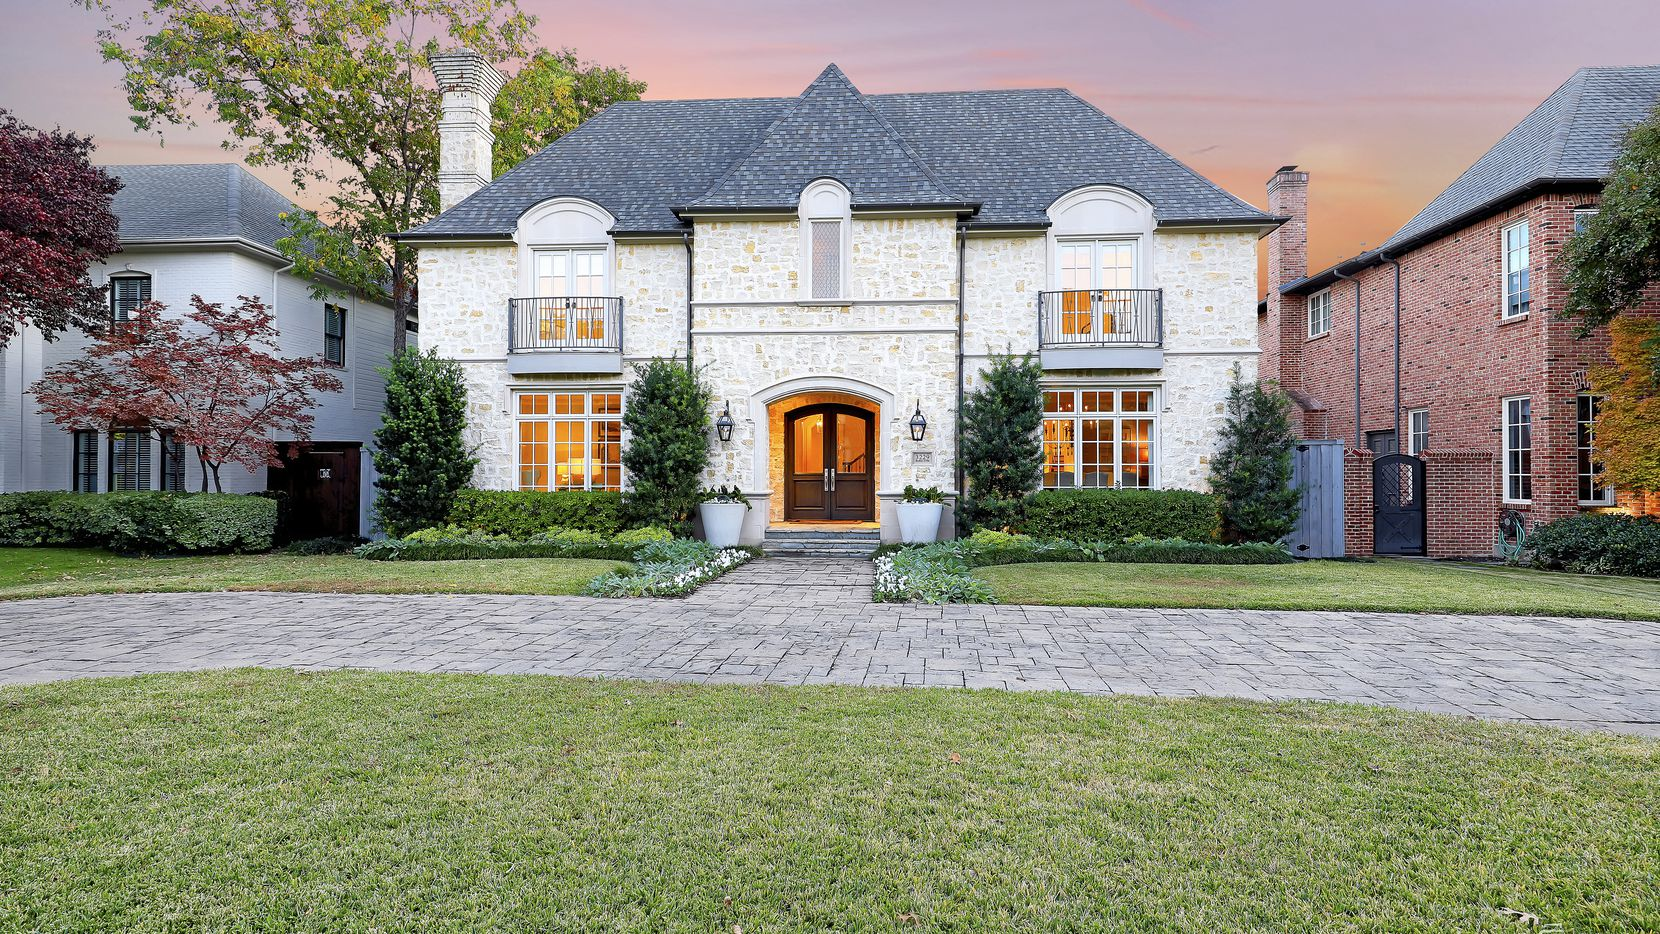 A traditional design can be found at 3229 Marquette St. in University Park, which features a stone-paved circular driveway.